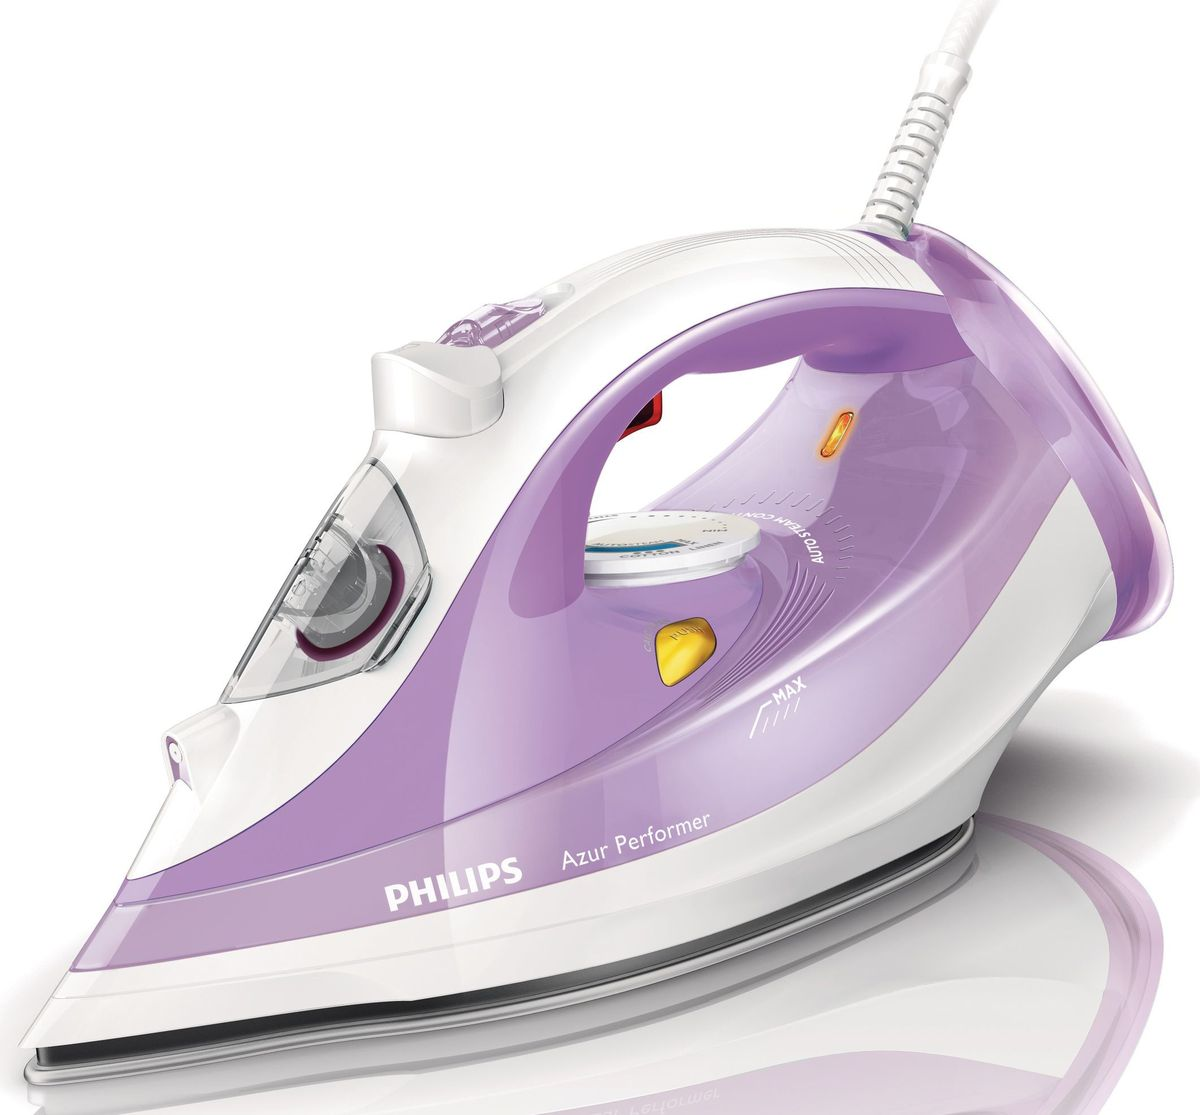 Philips GC3803/37 Azur Performer, White Purple утюг a dec performer ii в г новосибирске